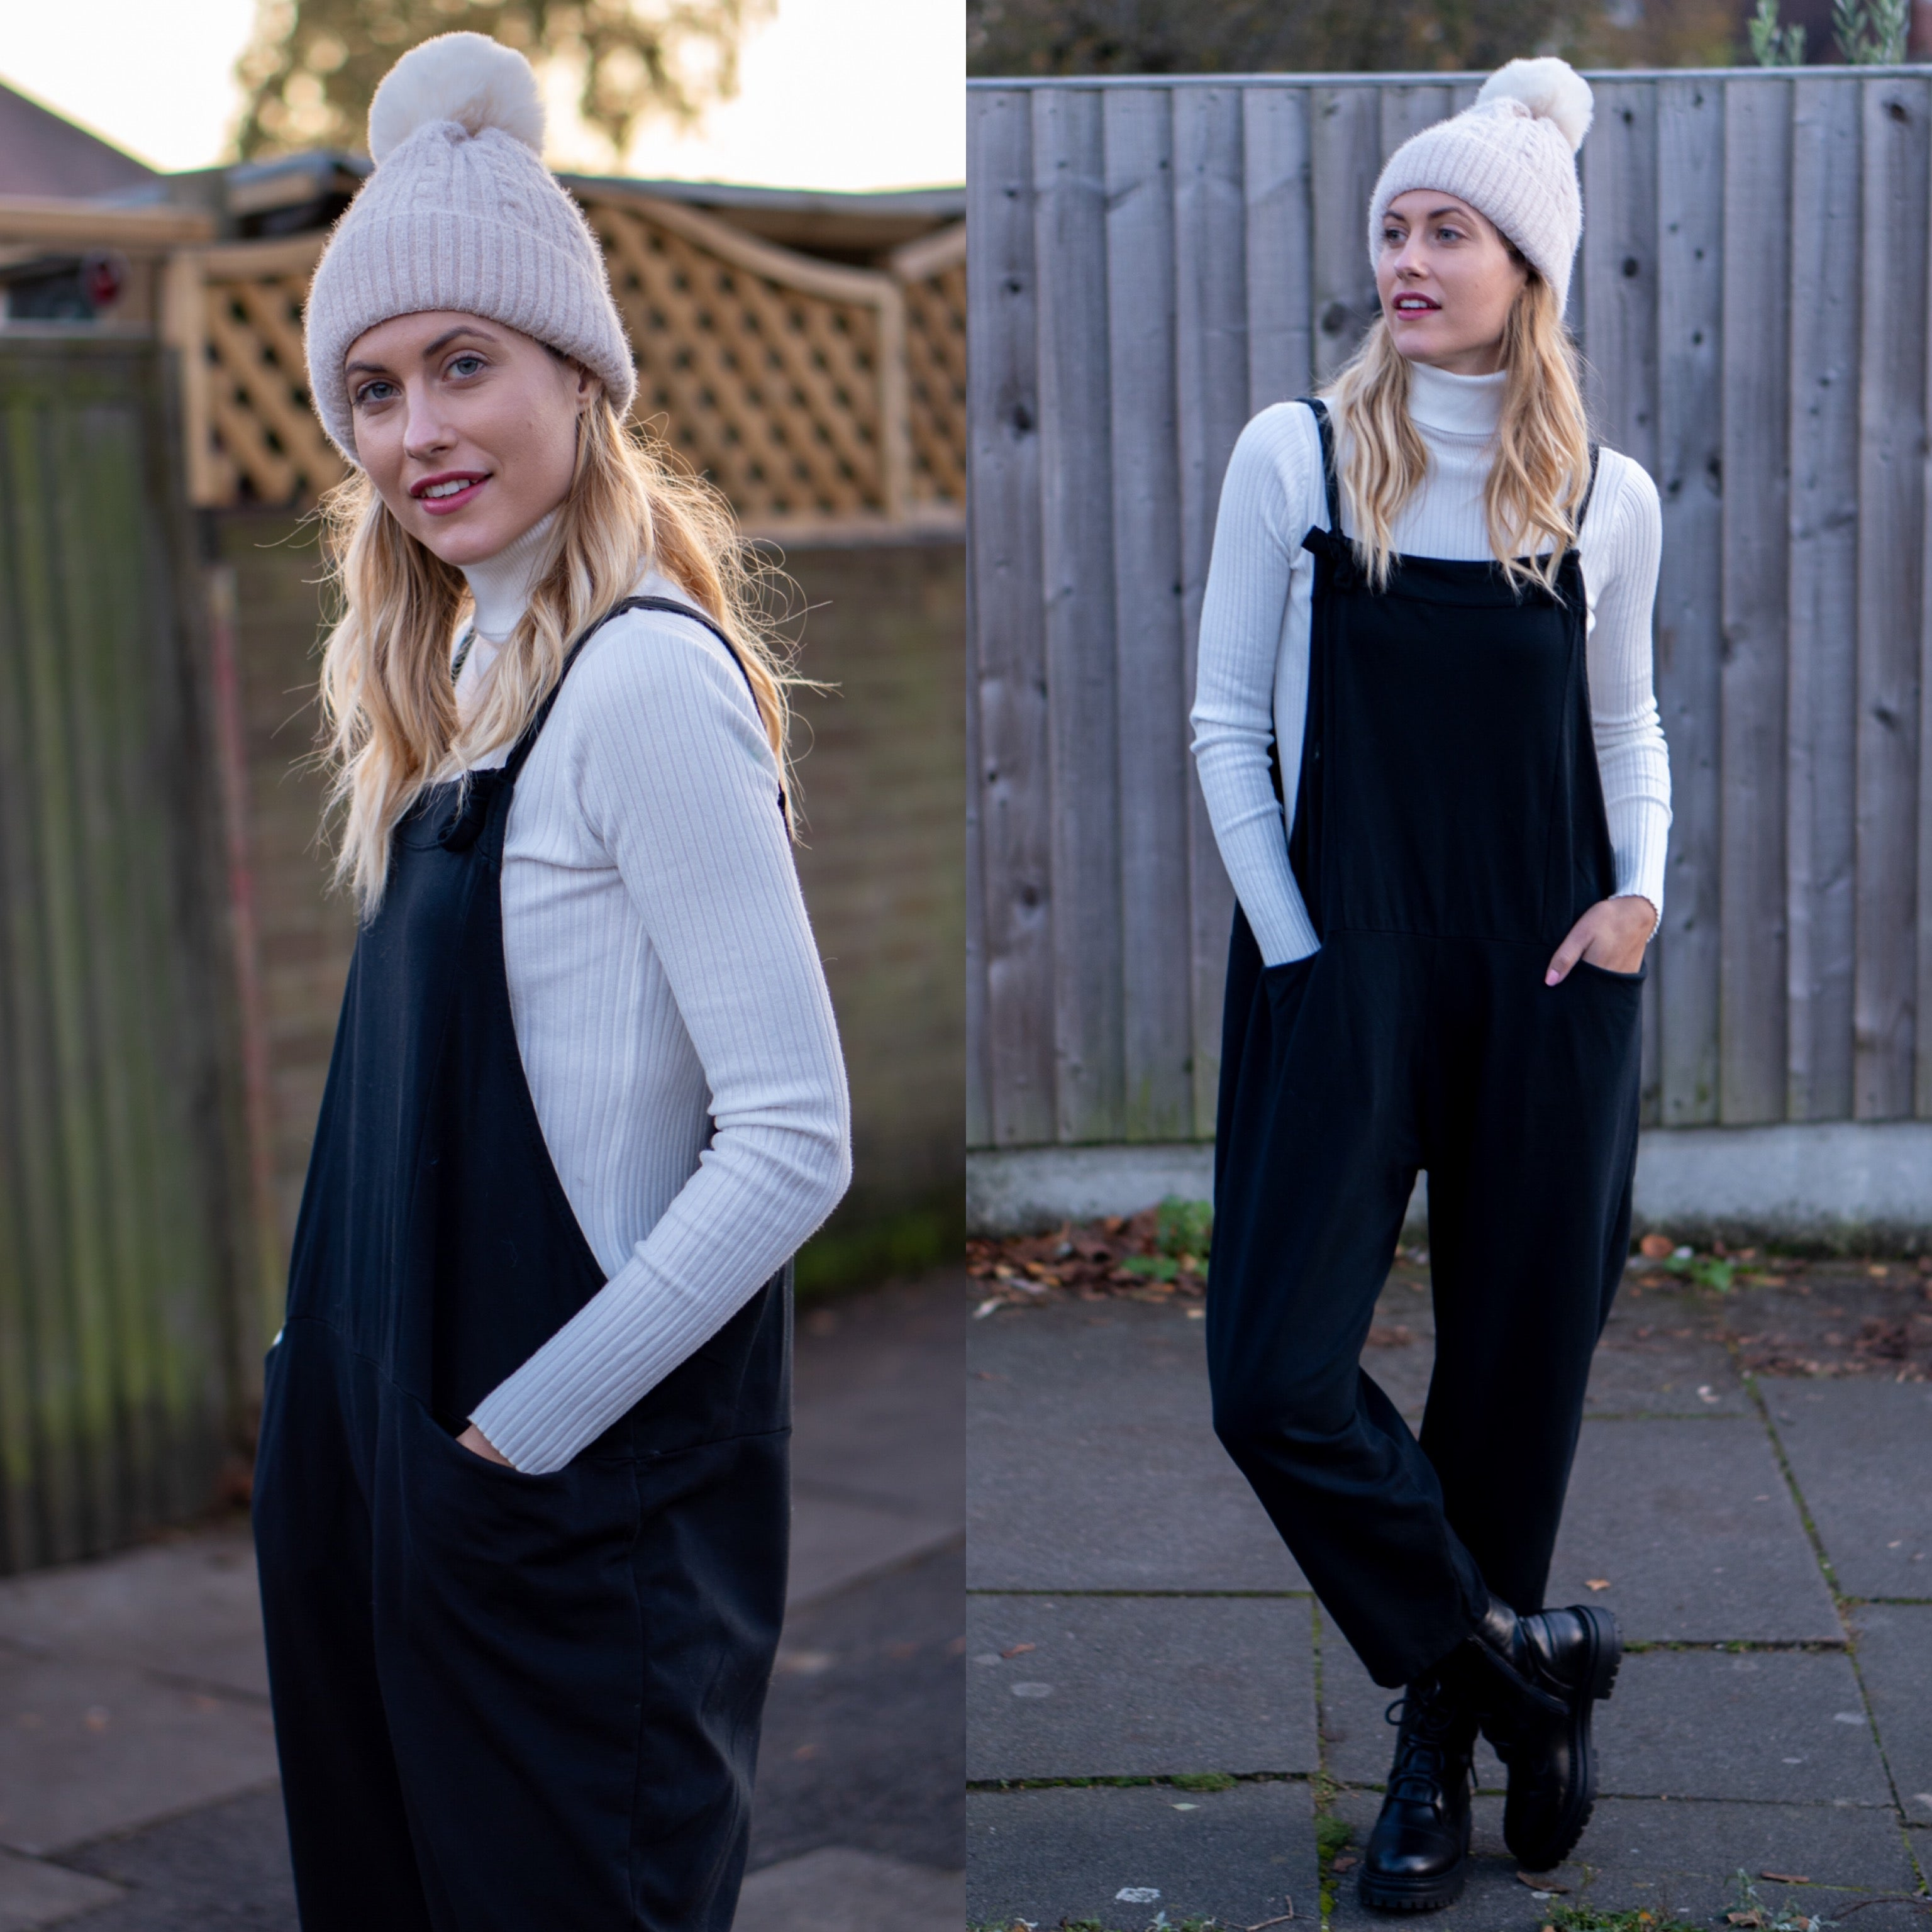 Dungarees Boyfriend Black Perfect Fit Overalls Pregnancy Loose Baggy